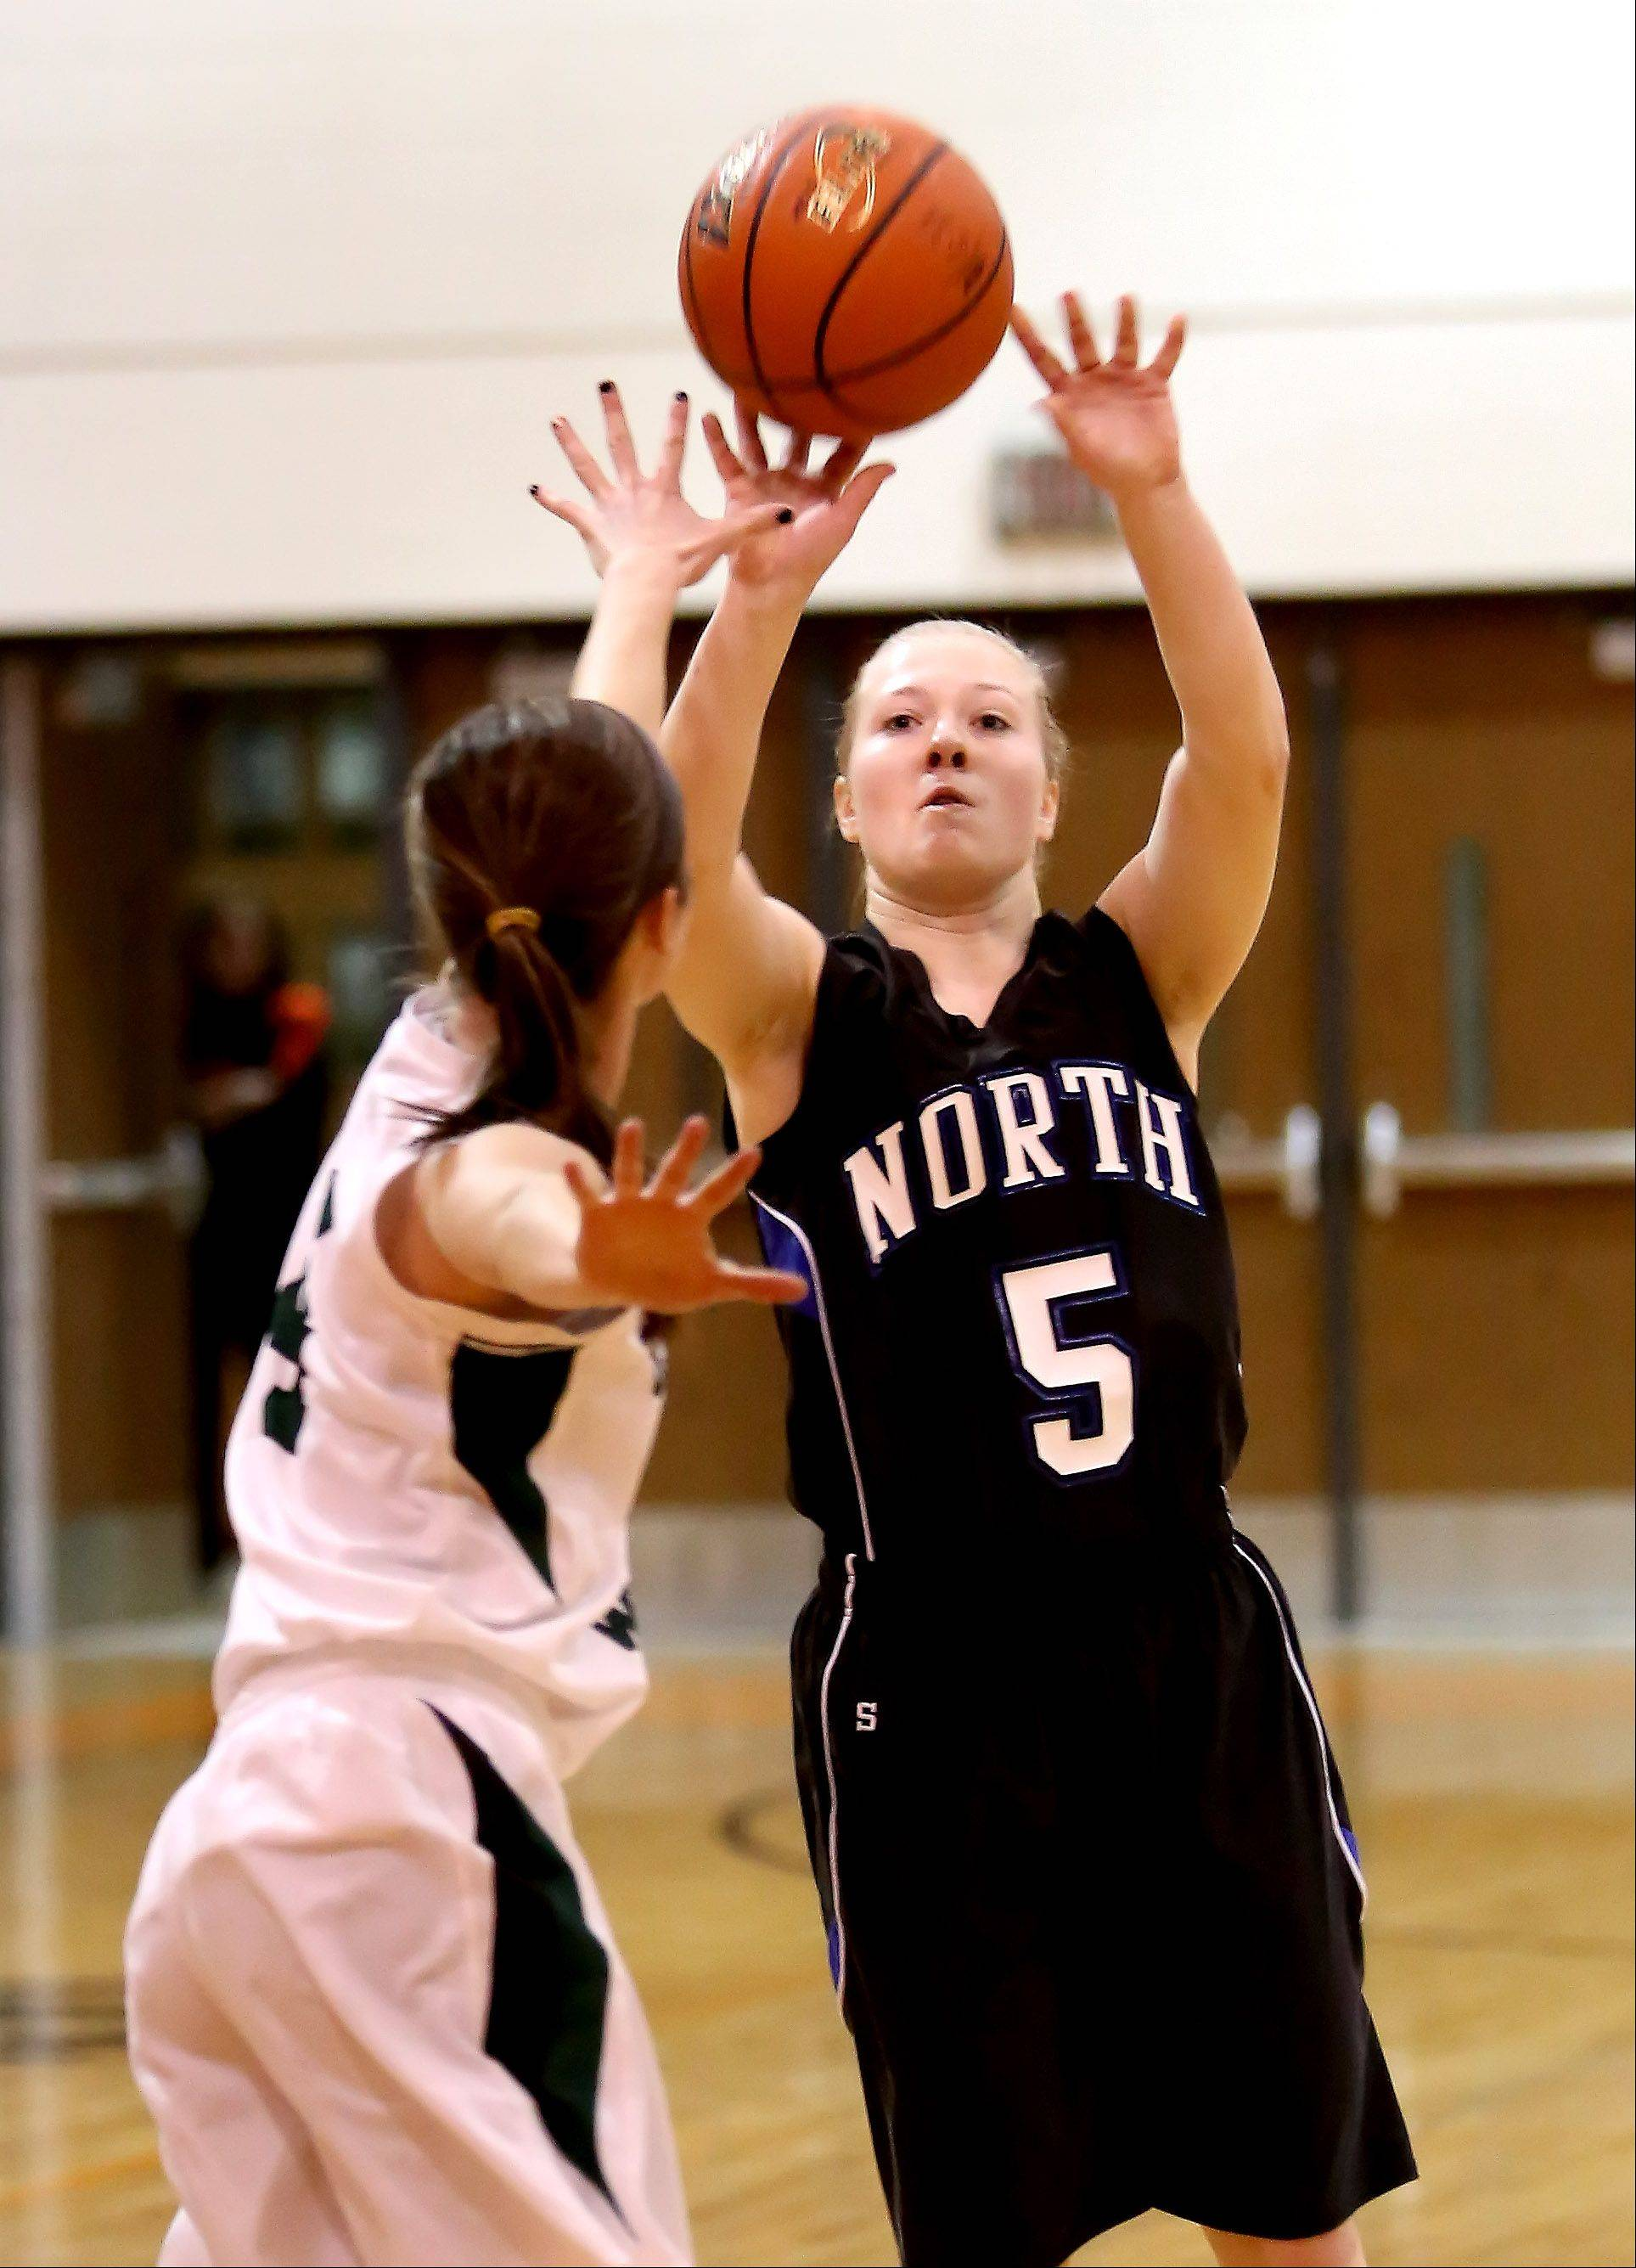 Natalie Winkates of St. Charles North goes for two points.